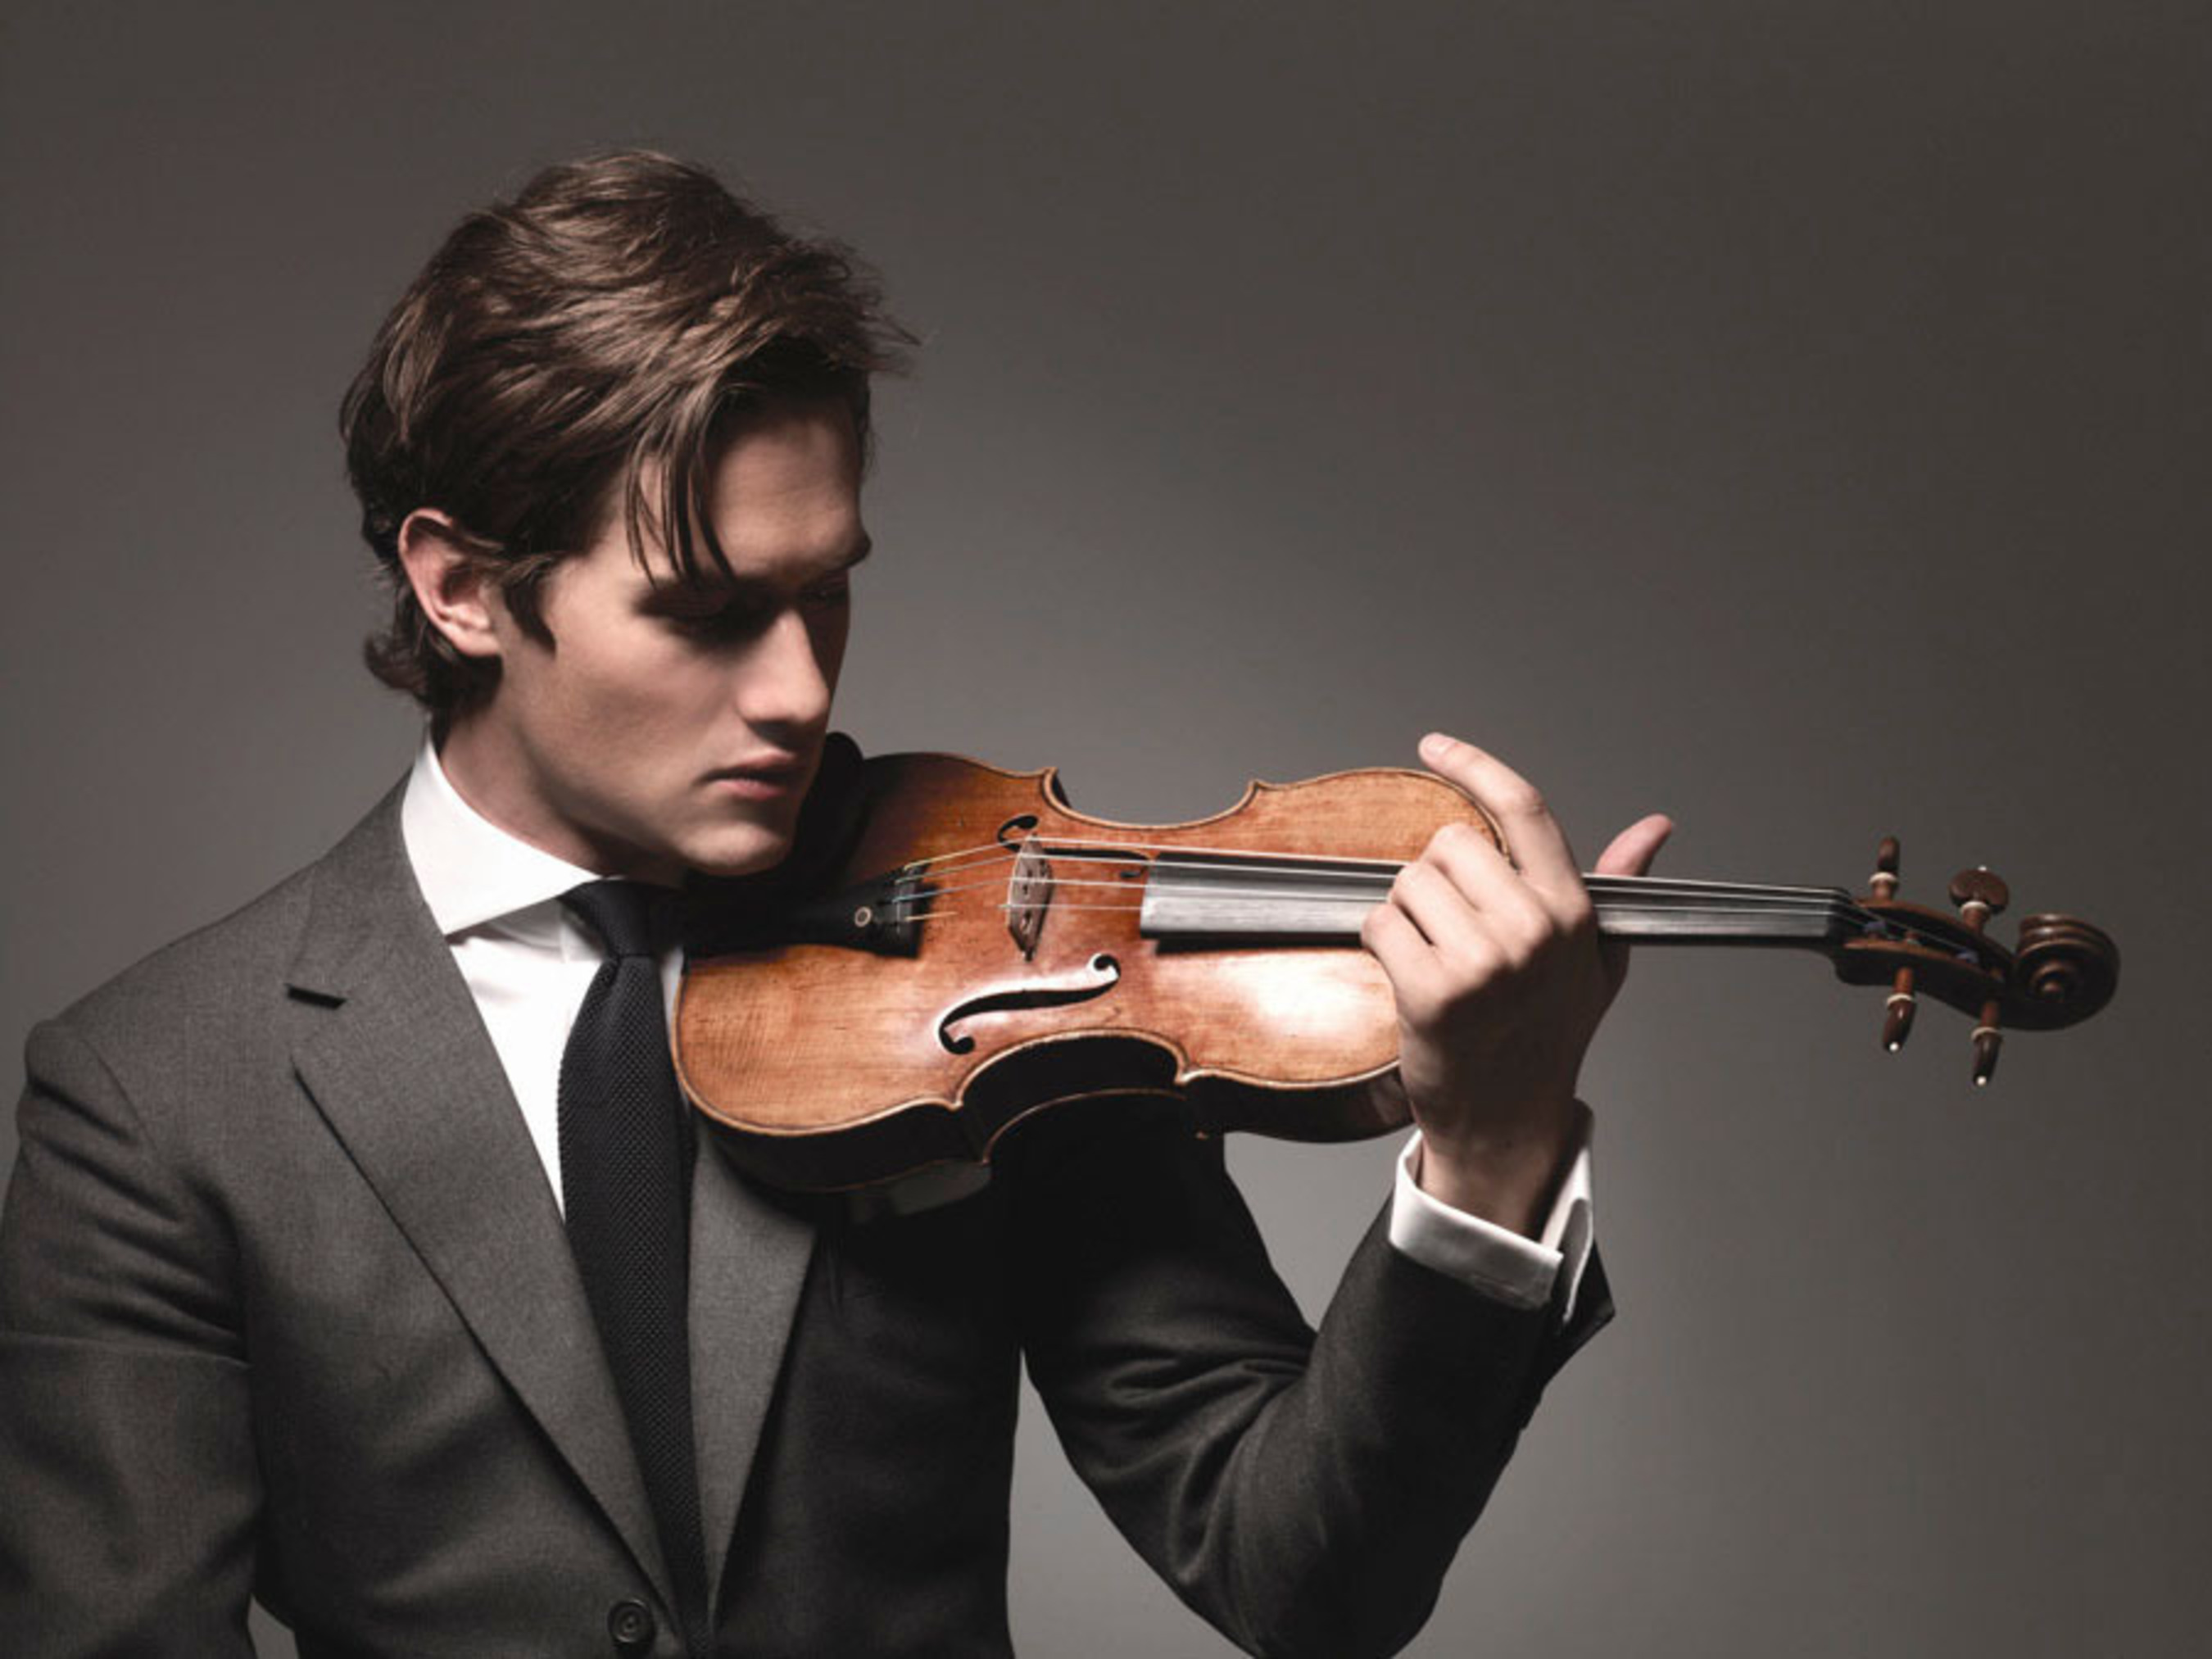 CBS Watch! Magazine Partners With Classical Musician Charlie Siem On Spring Marketing Campaign. (PRNewsFoto/CBS Corporation) (PRNewsFoto/CBS CORPORATION)